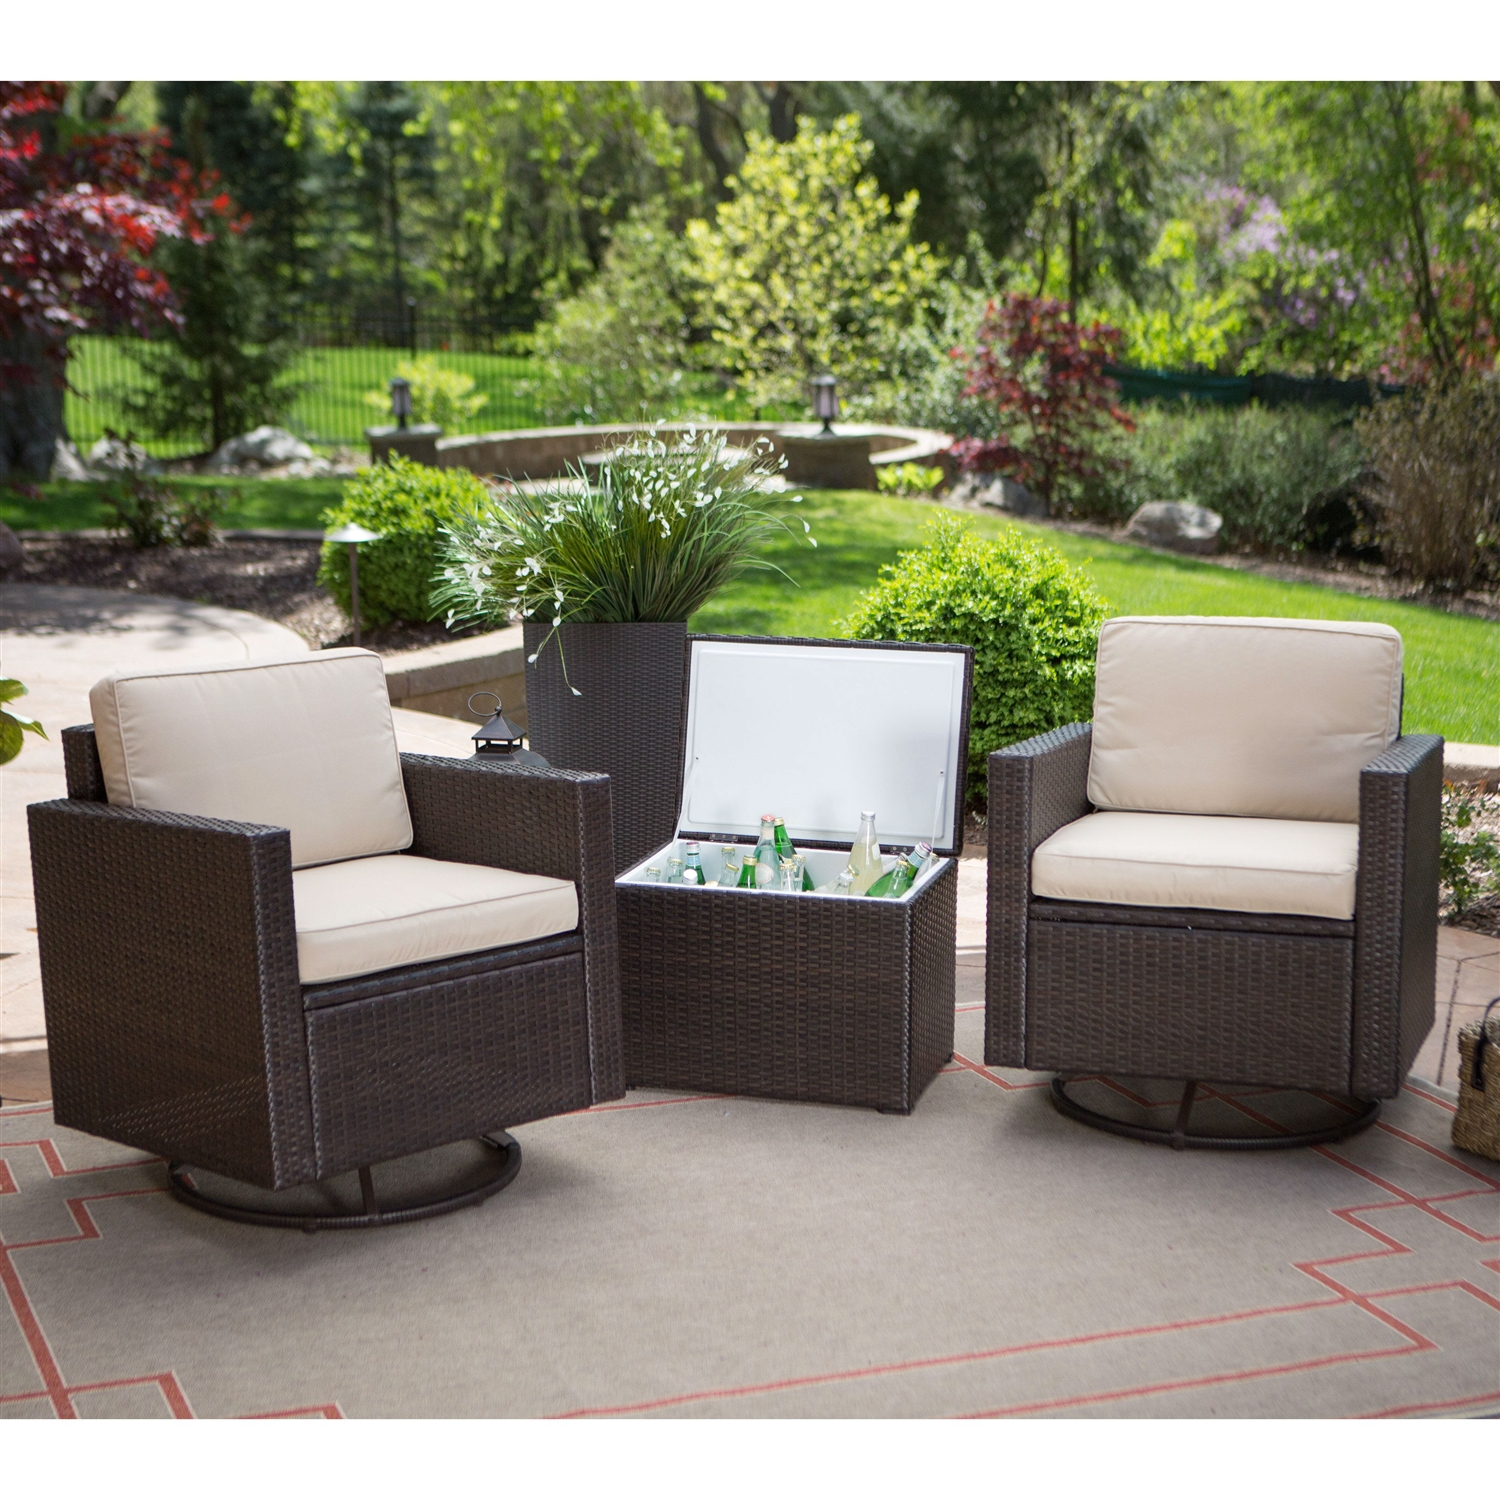 Unique Resin Patio Furniture Images